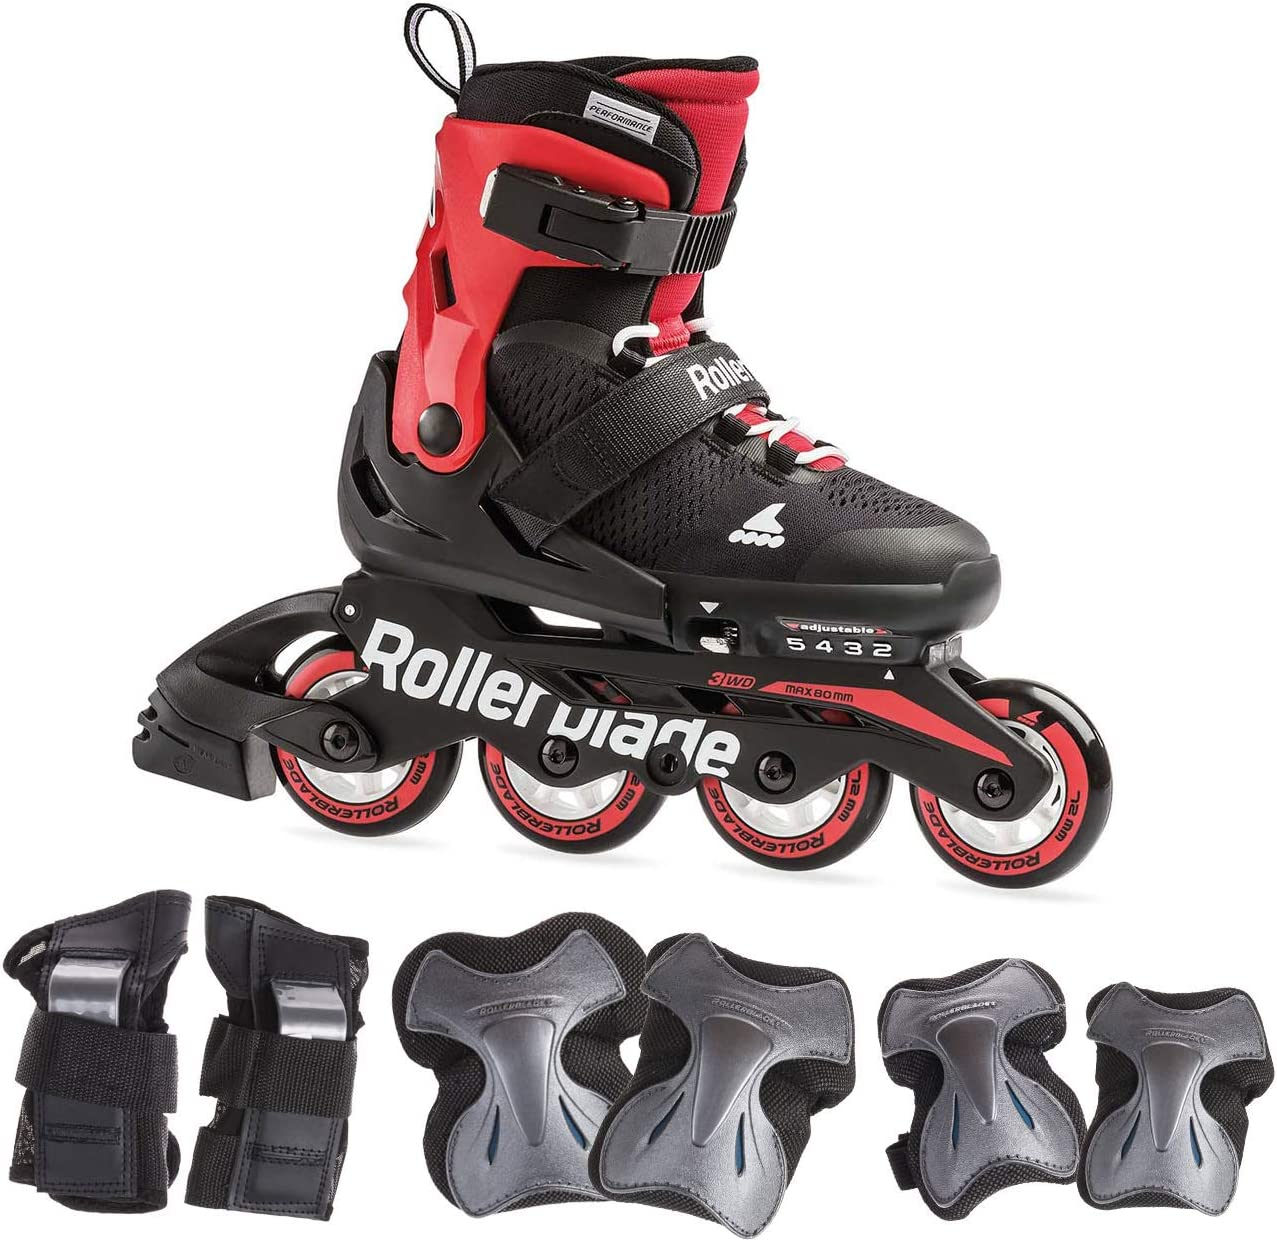 Rollerblade Microblade Boy s Adjustable Fitness Inline Skates and 3 Pack of Protective Gear , Black and Red, Junior, Youth Performance Inline Skates